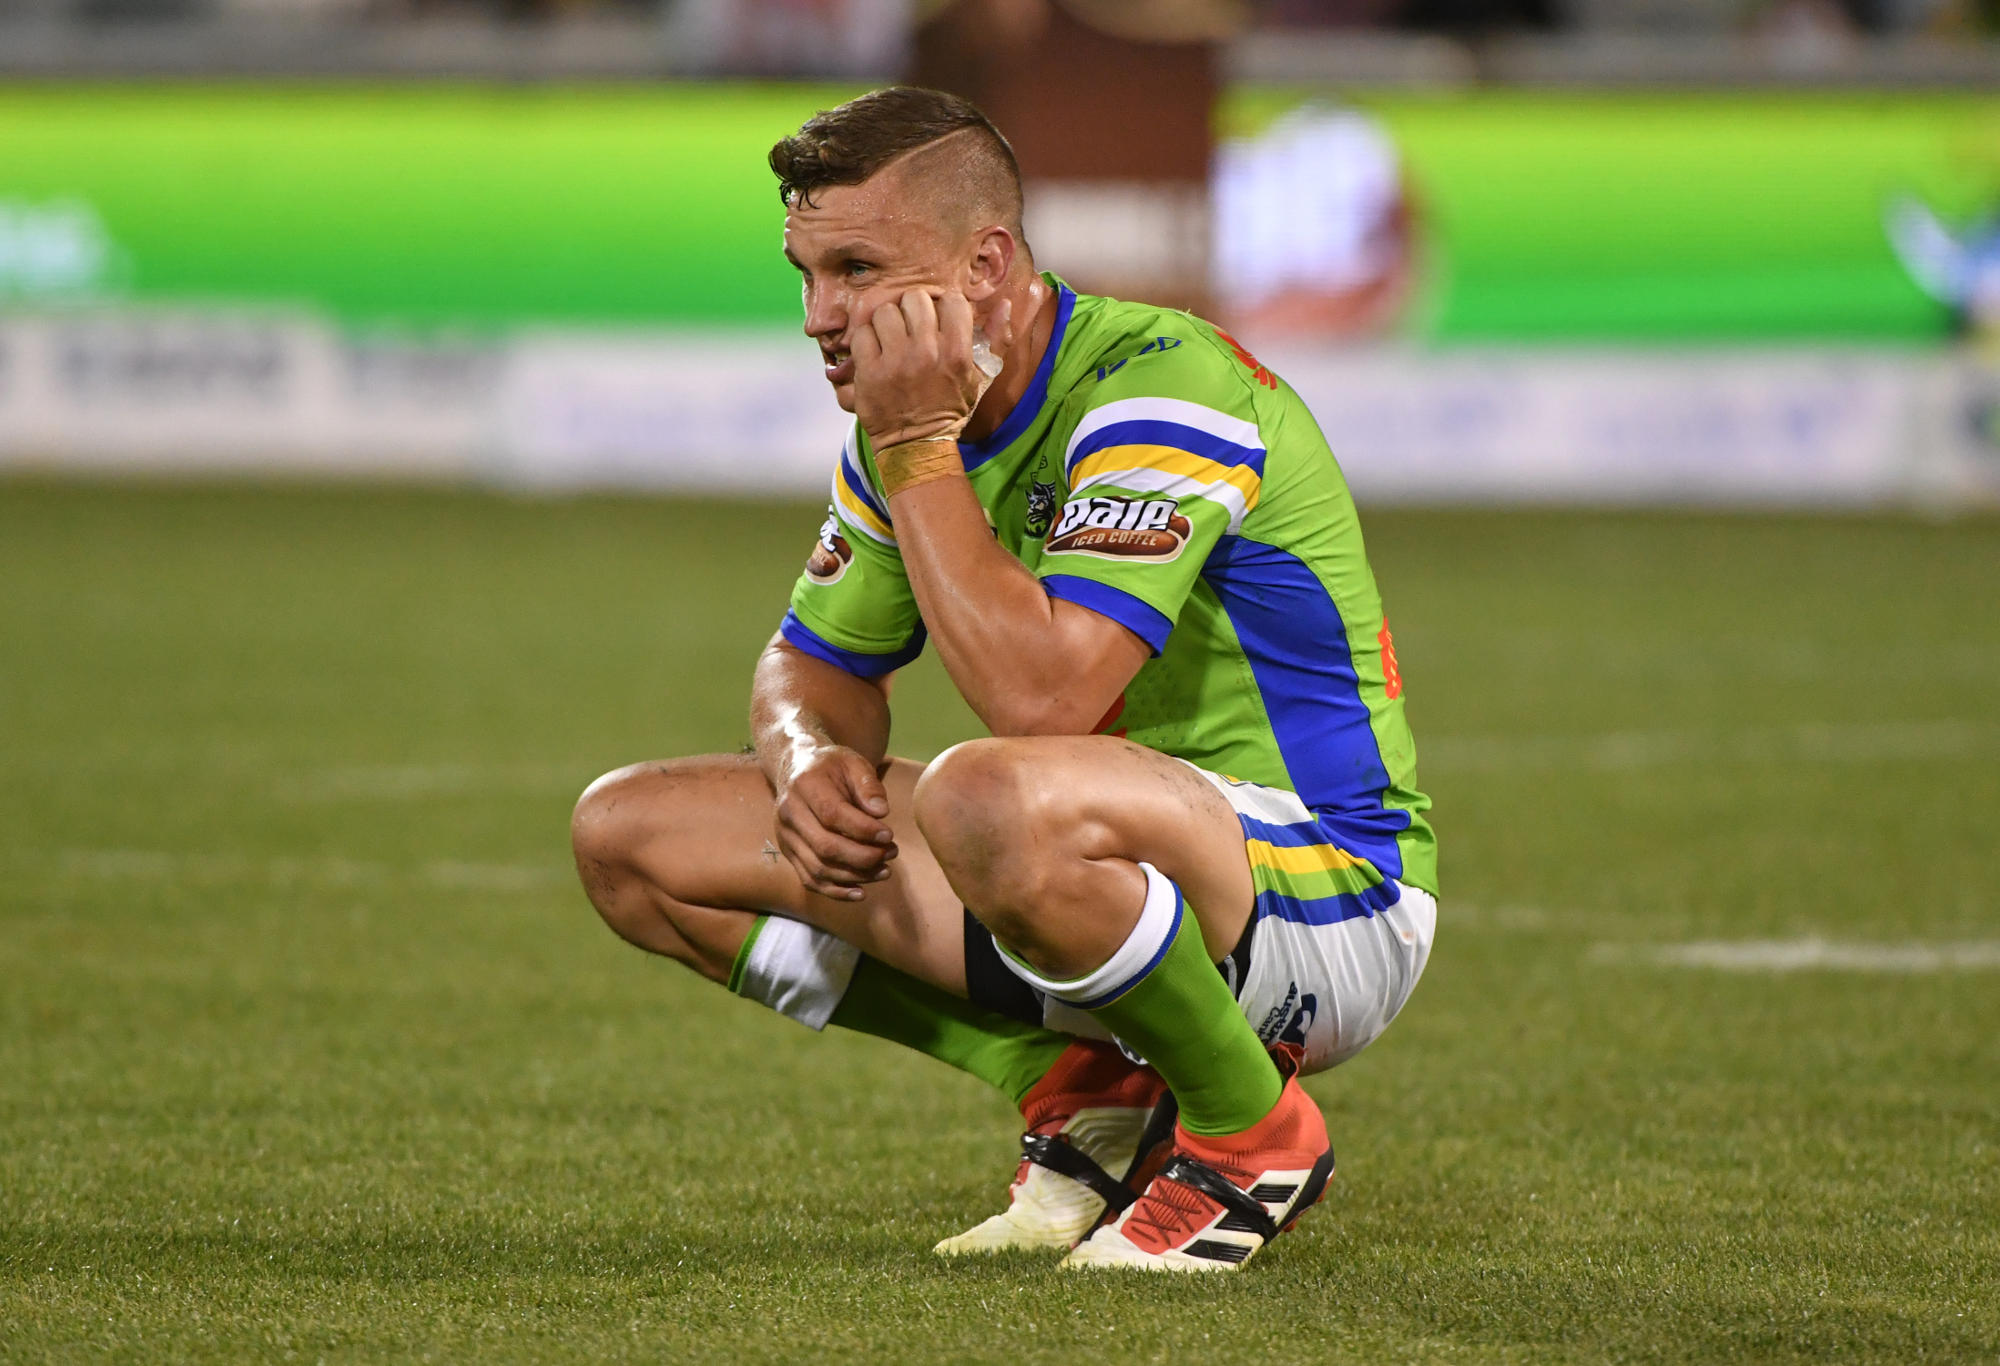 Raiders Jack Wighton looks on